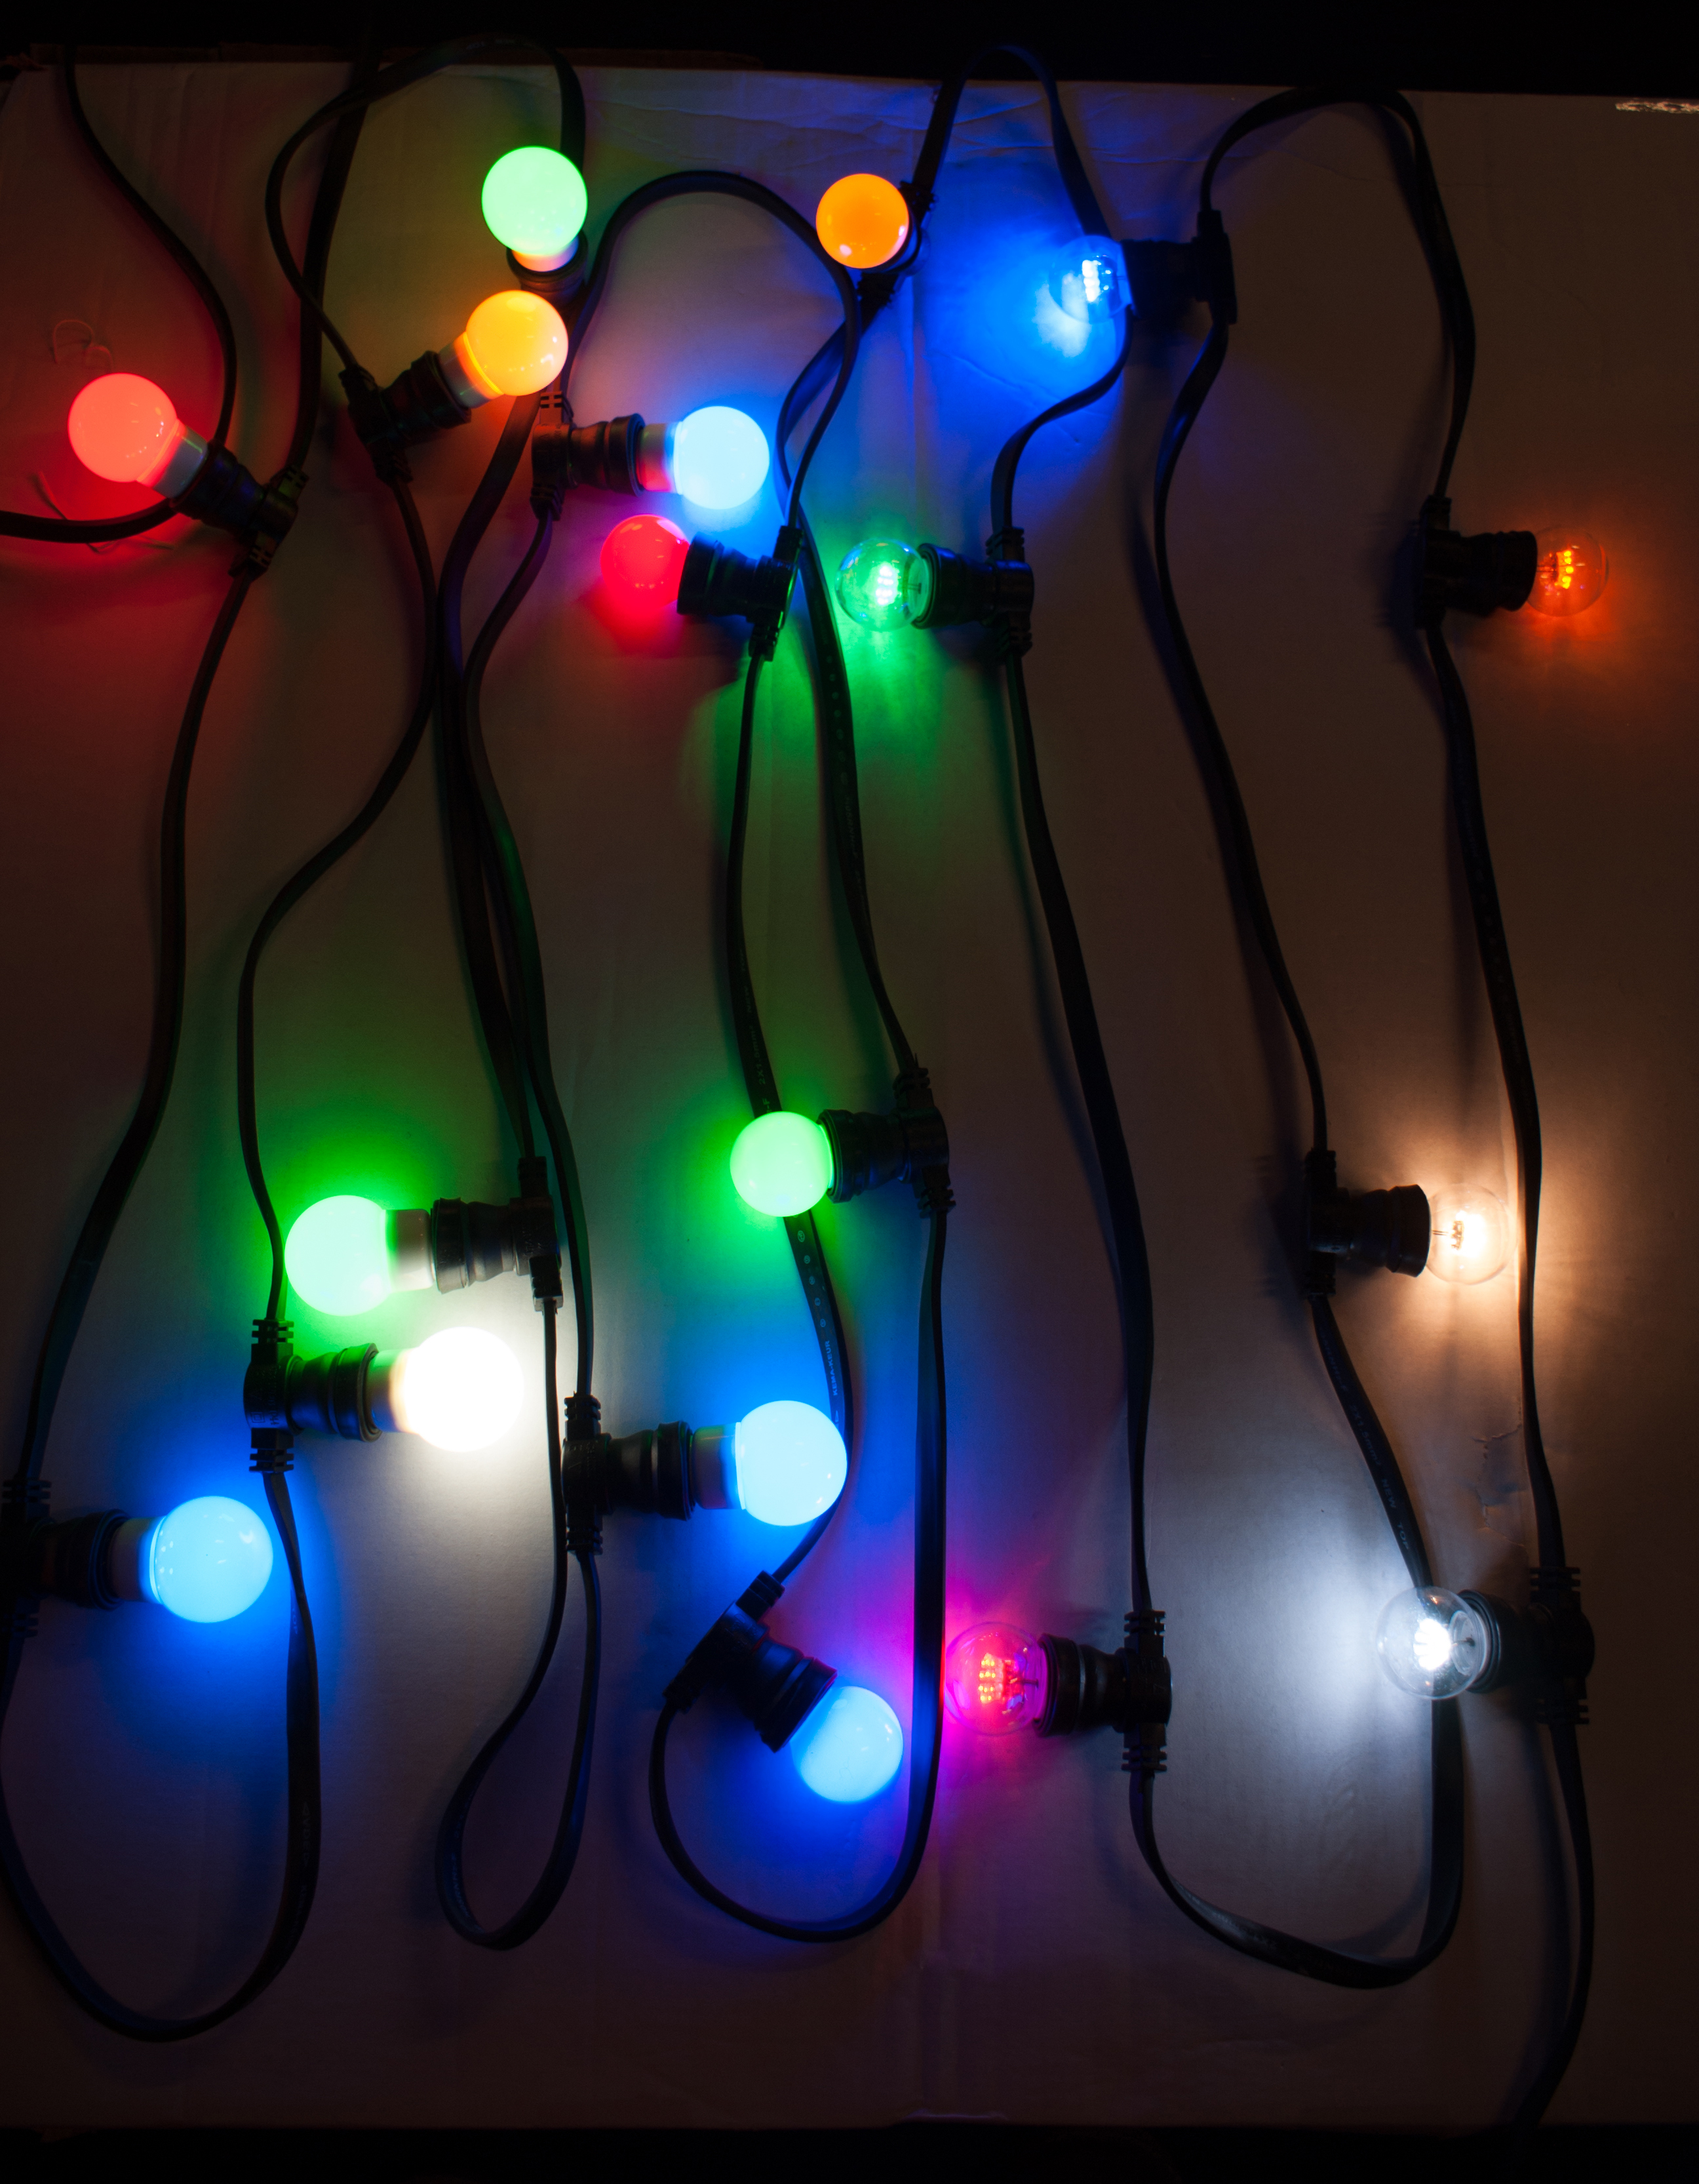 PREMIER LED Festoon Party Lights String Strips Rope 200M Garden FULL SET UK eBay